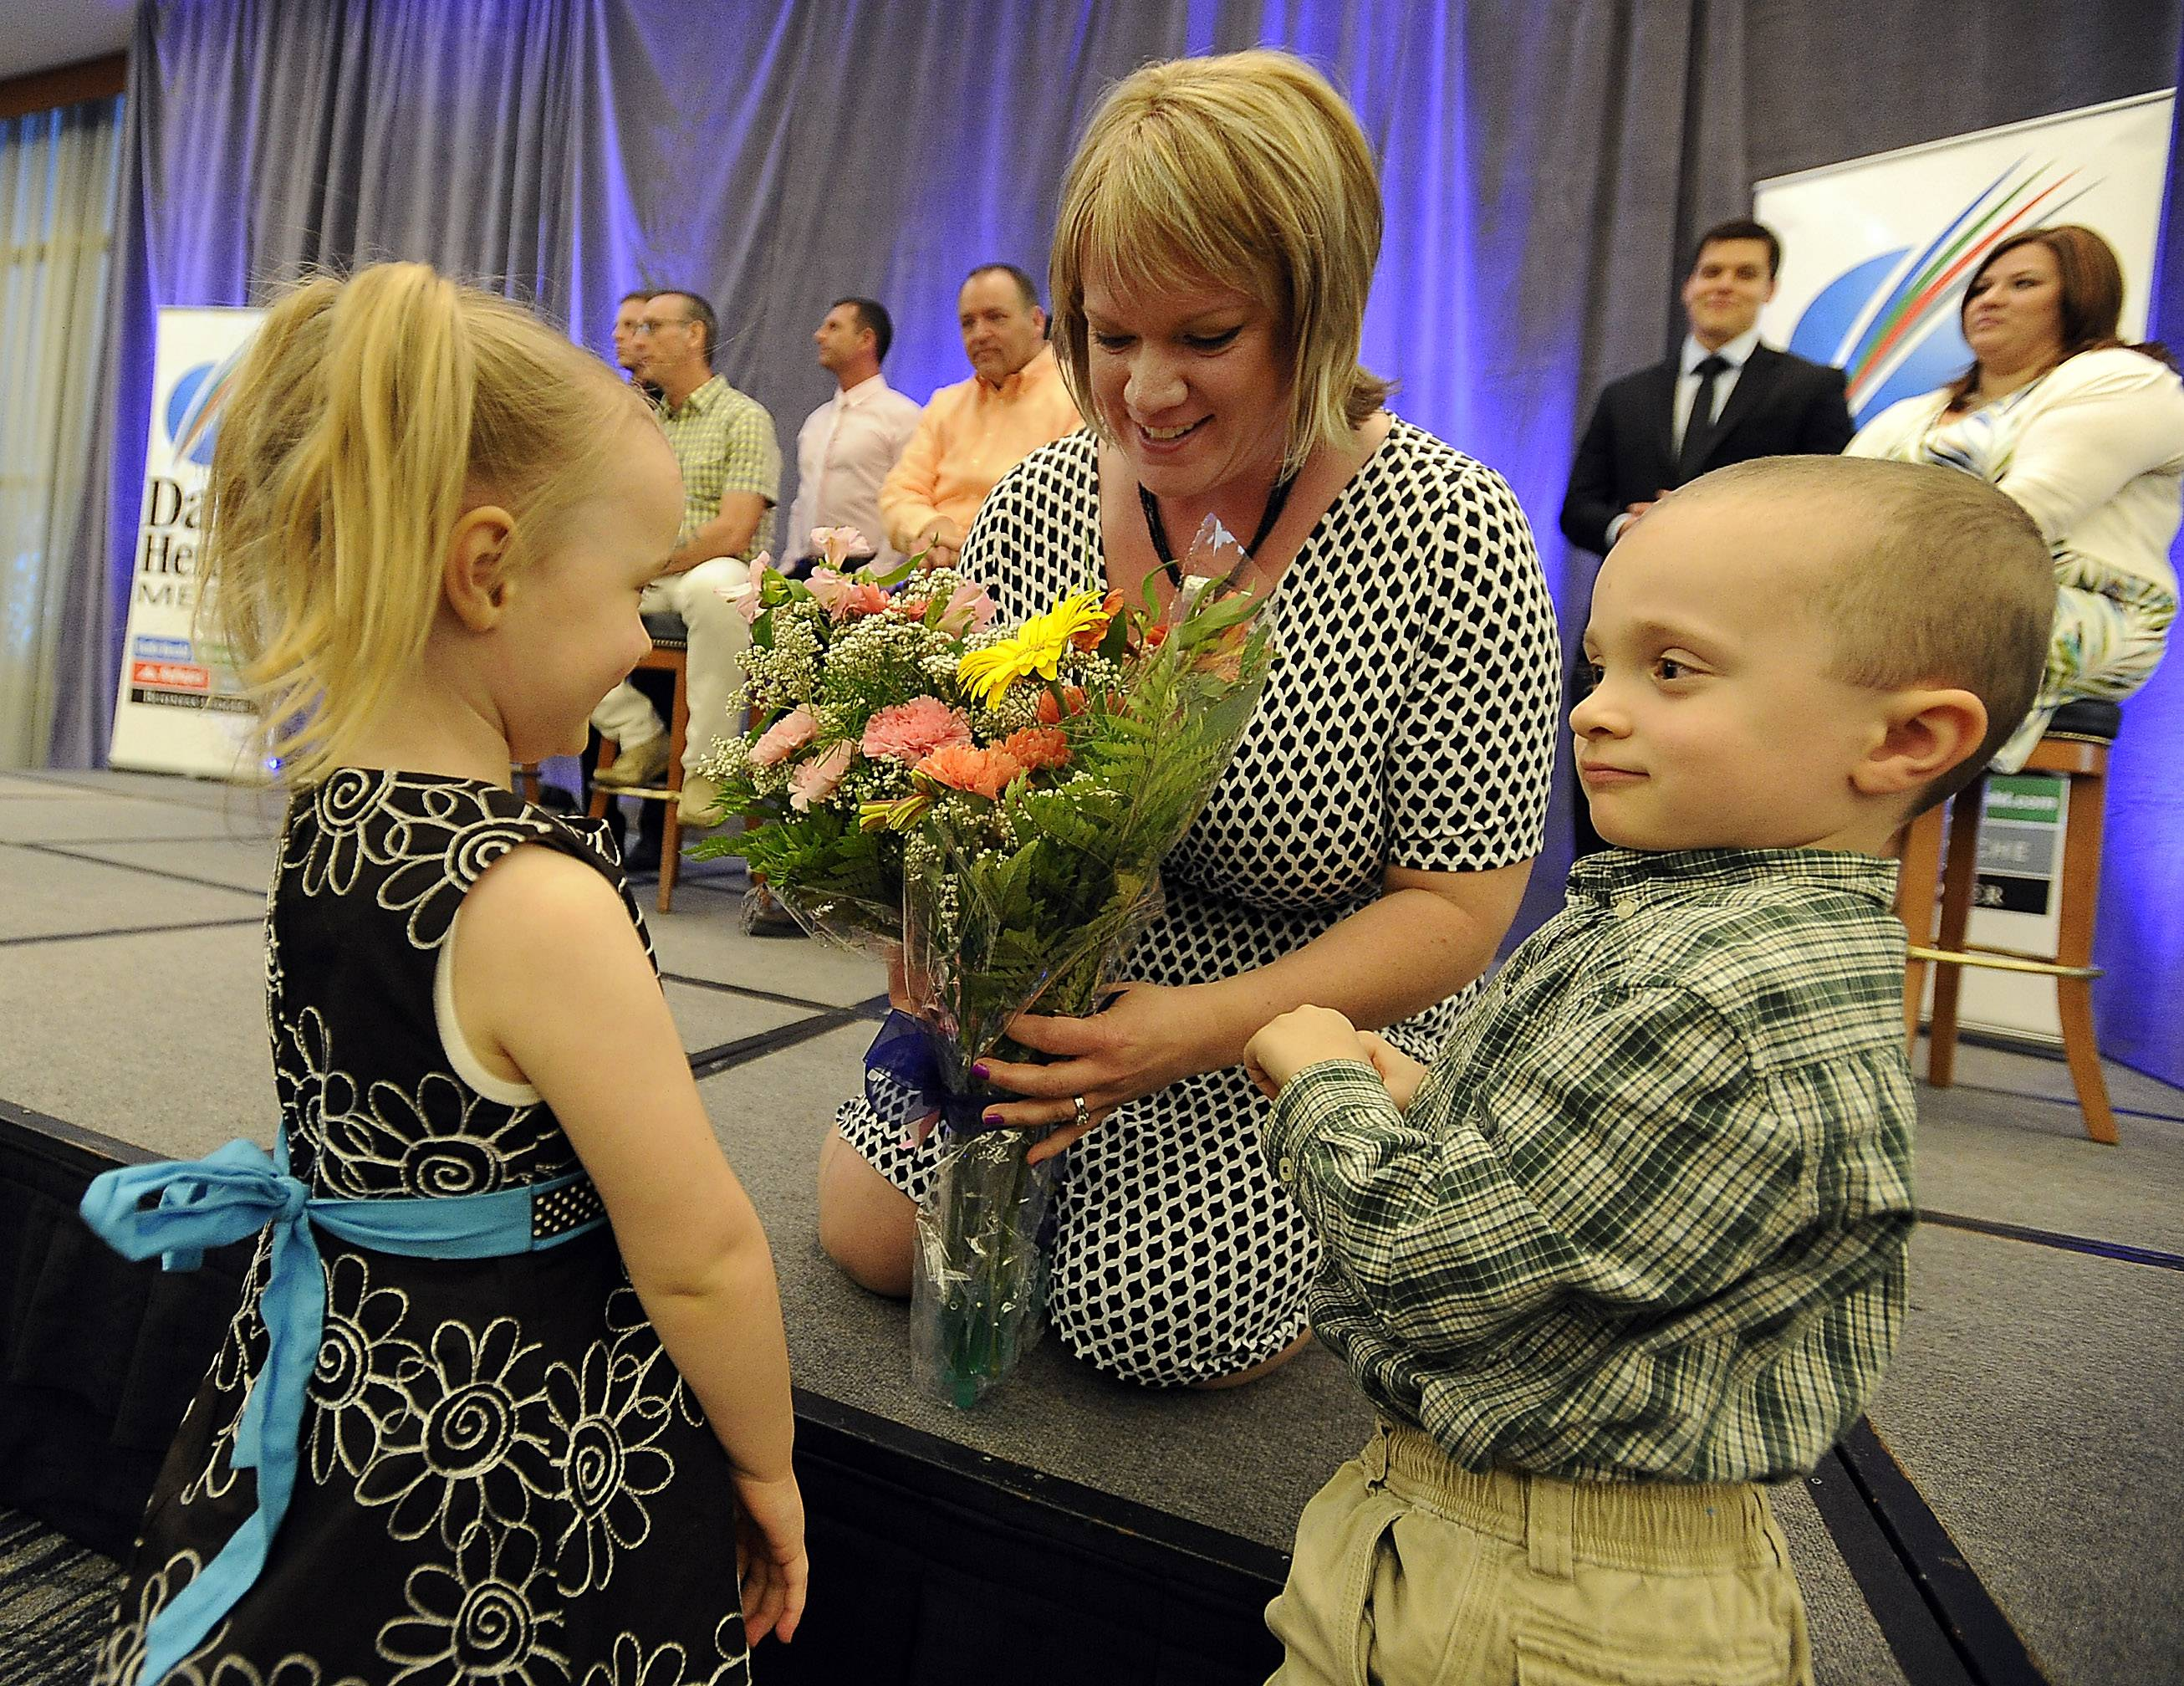 Jillian and Michael Seibert give their mom, Fittest Loser contestant Cheryl Seibert, flowers at the celebration held Thursday at Eaglewood Resort and Spa in Itasca.